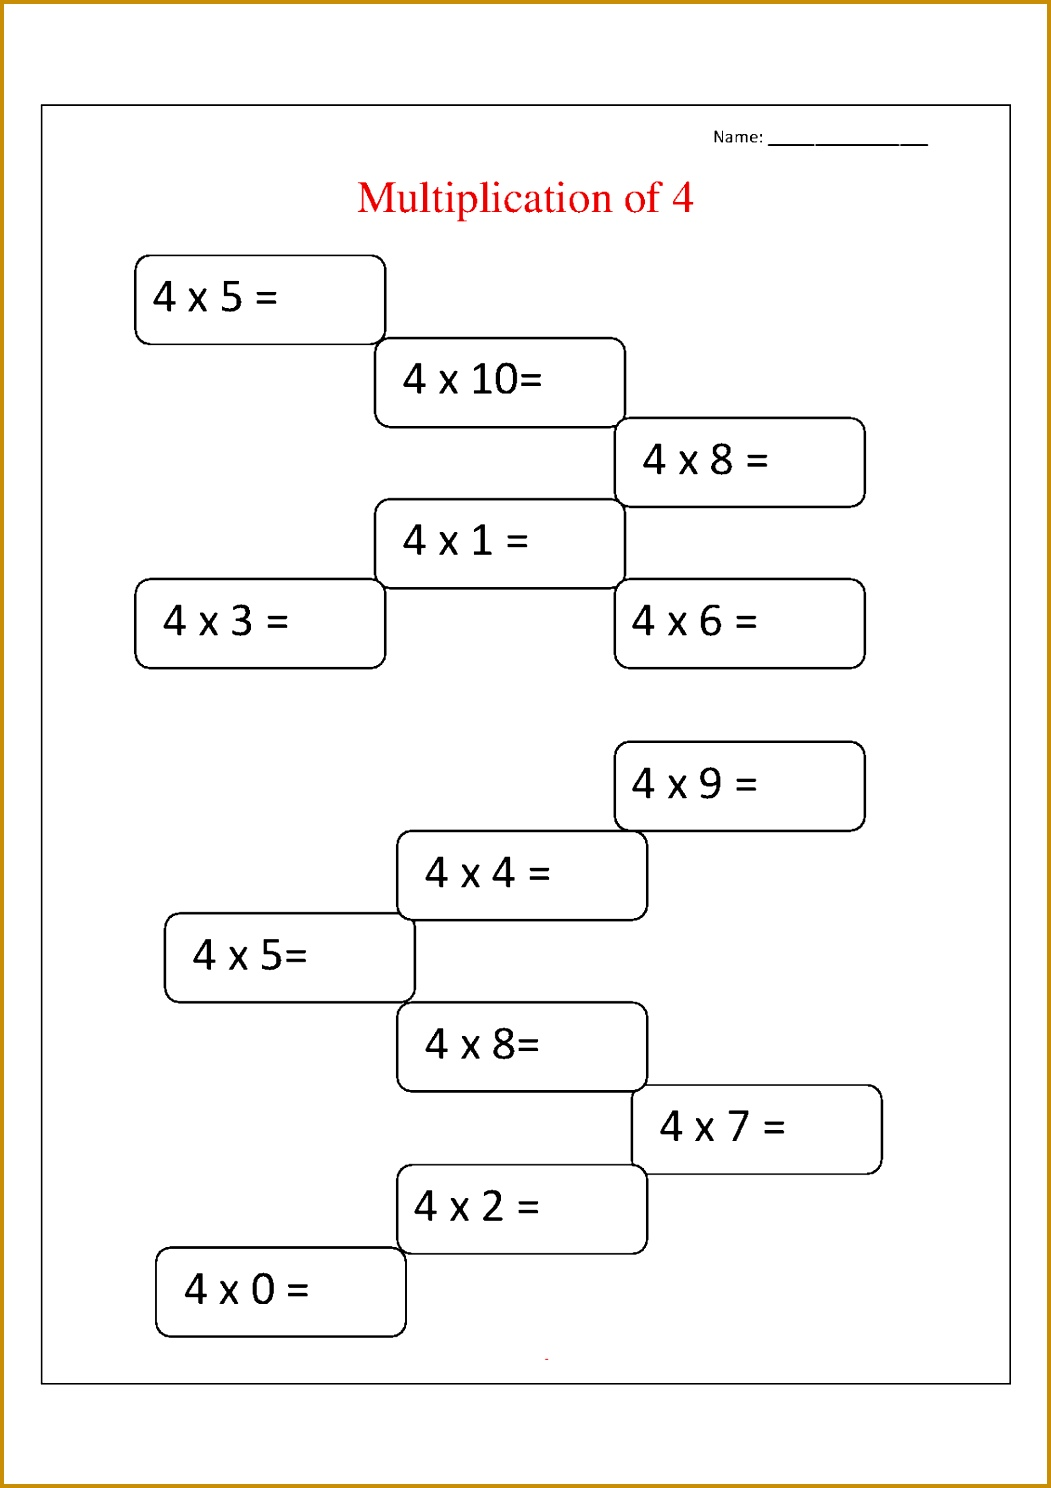 5 Multiplication Facts Worksheet